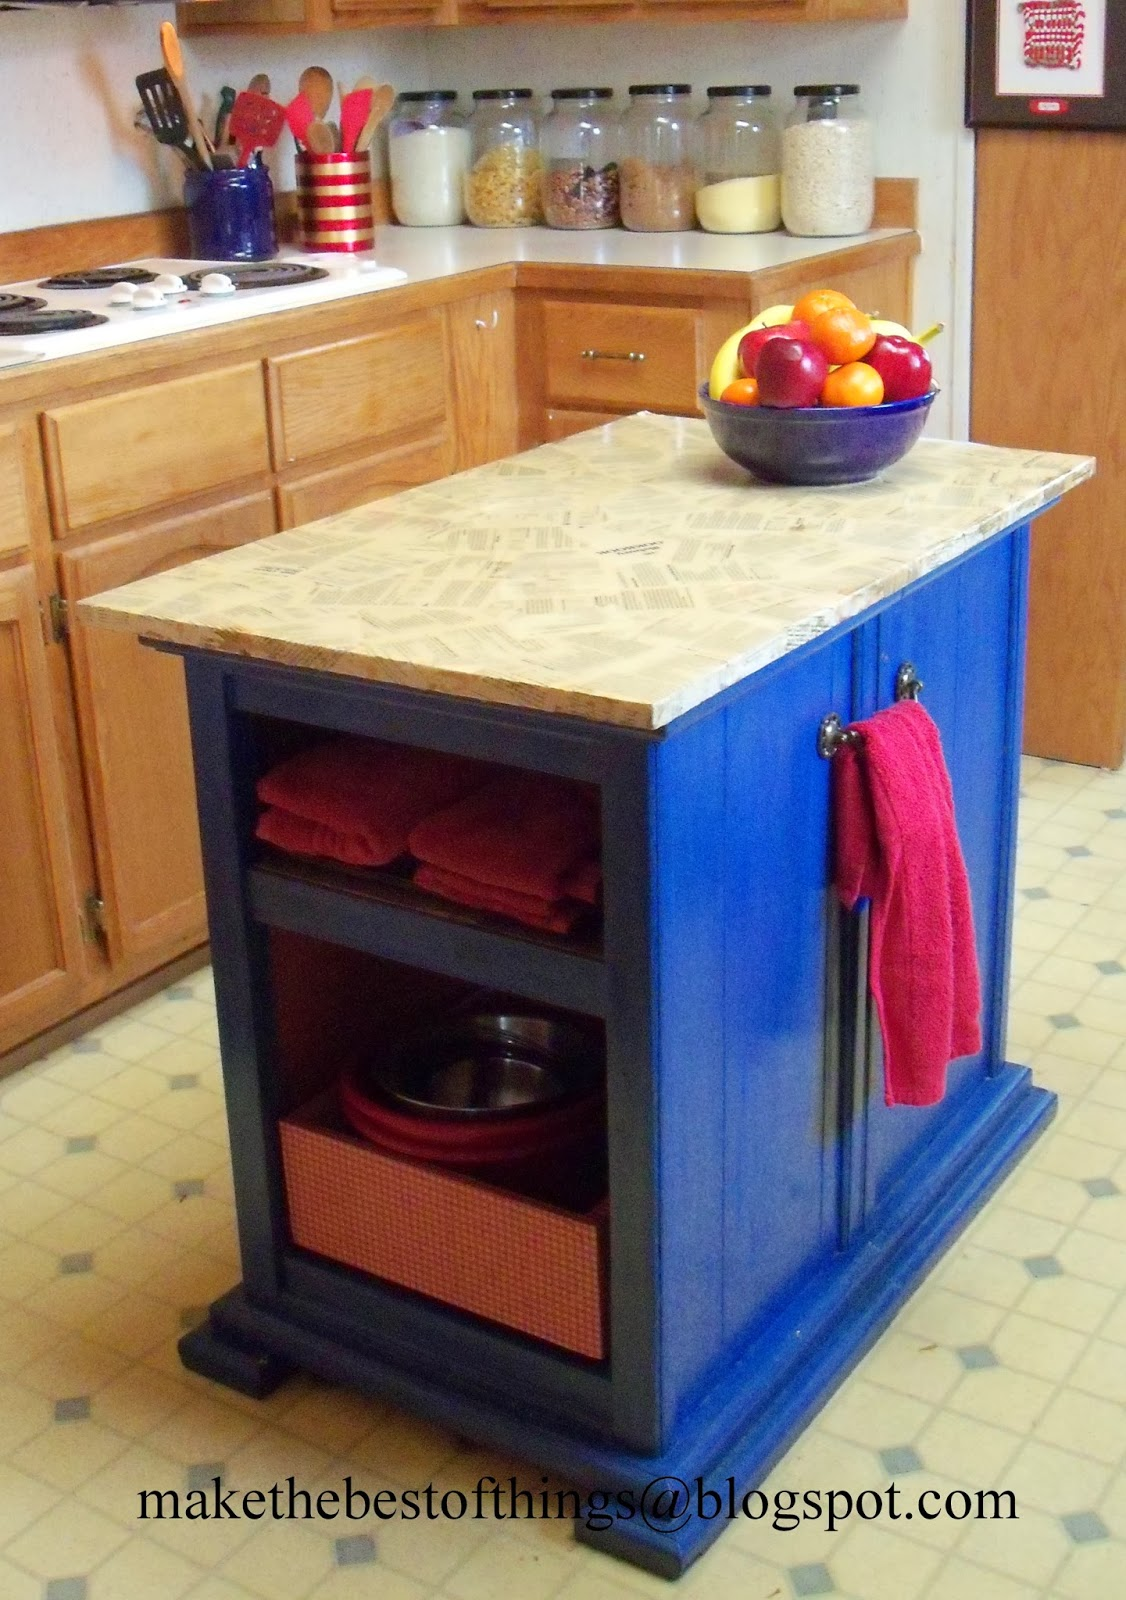 Creating A Kitchen Island: Make The Best Of Things: Nightstands Turned Kitchen Island